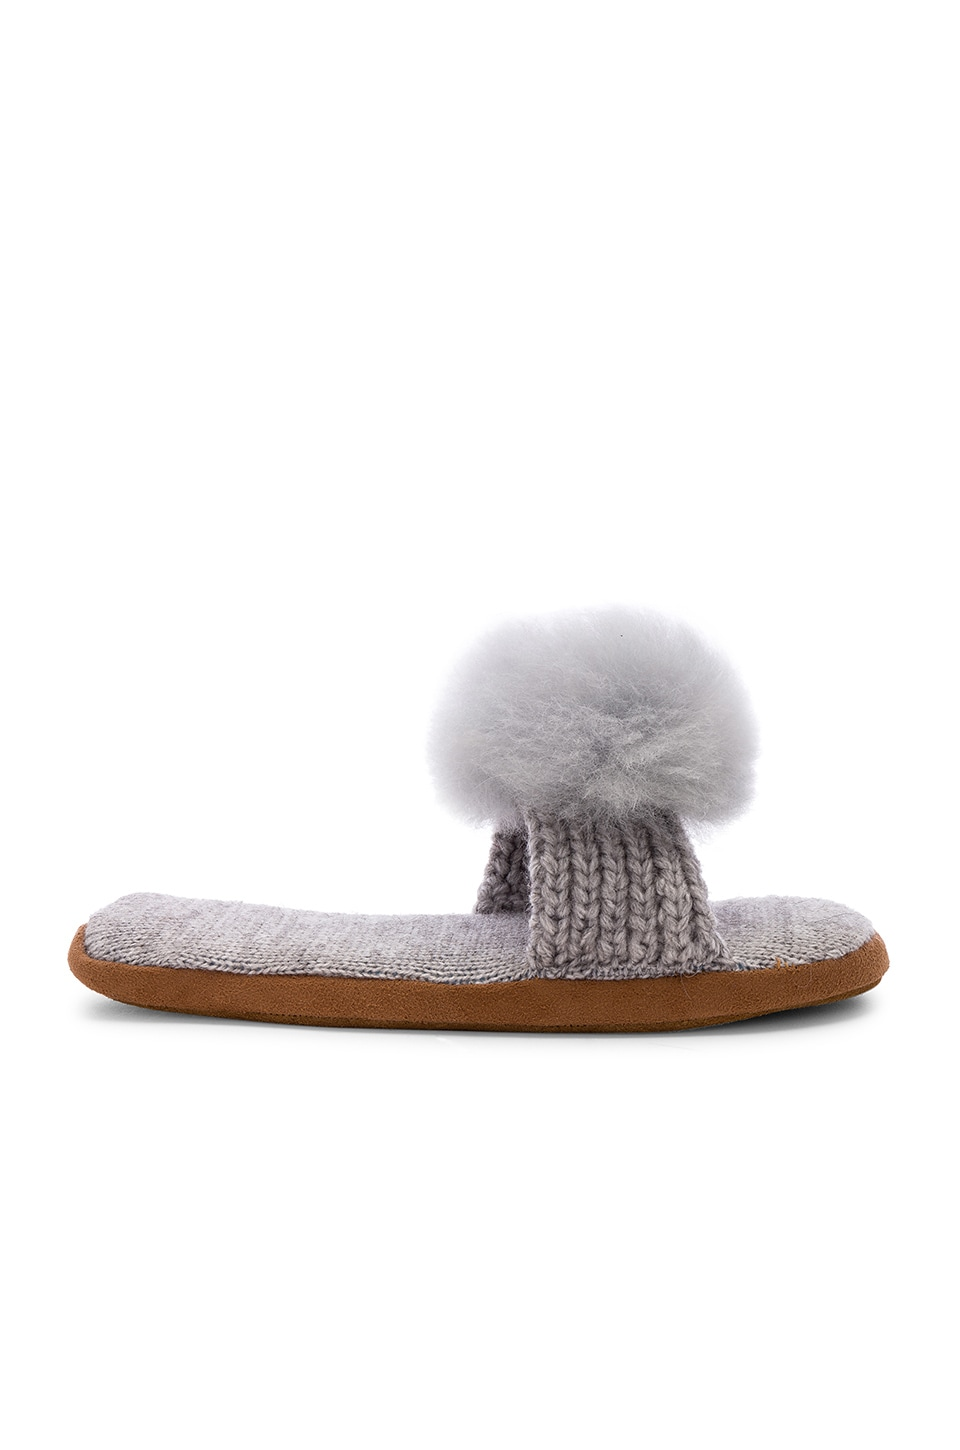 ARIANA BOHLING Pom Slide in Grey